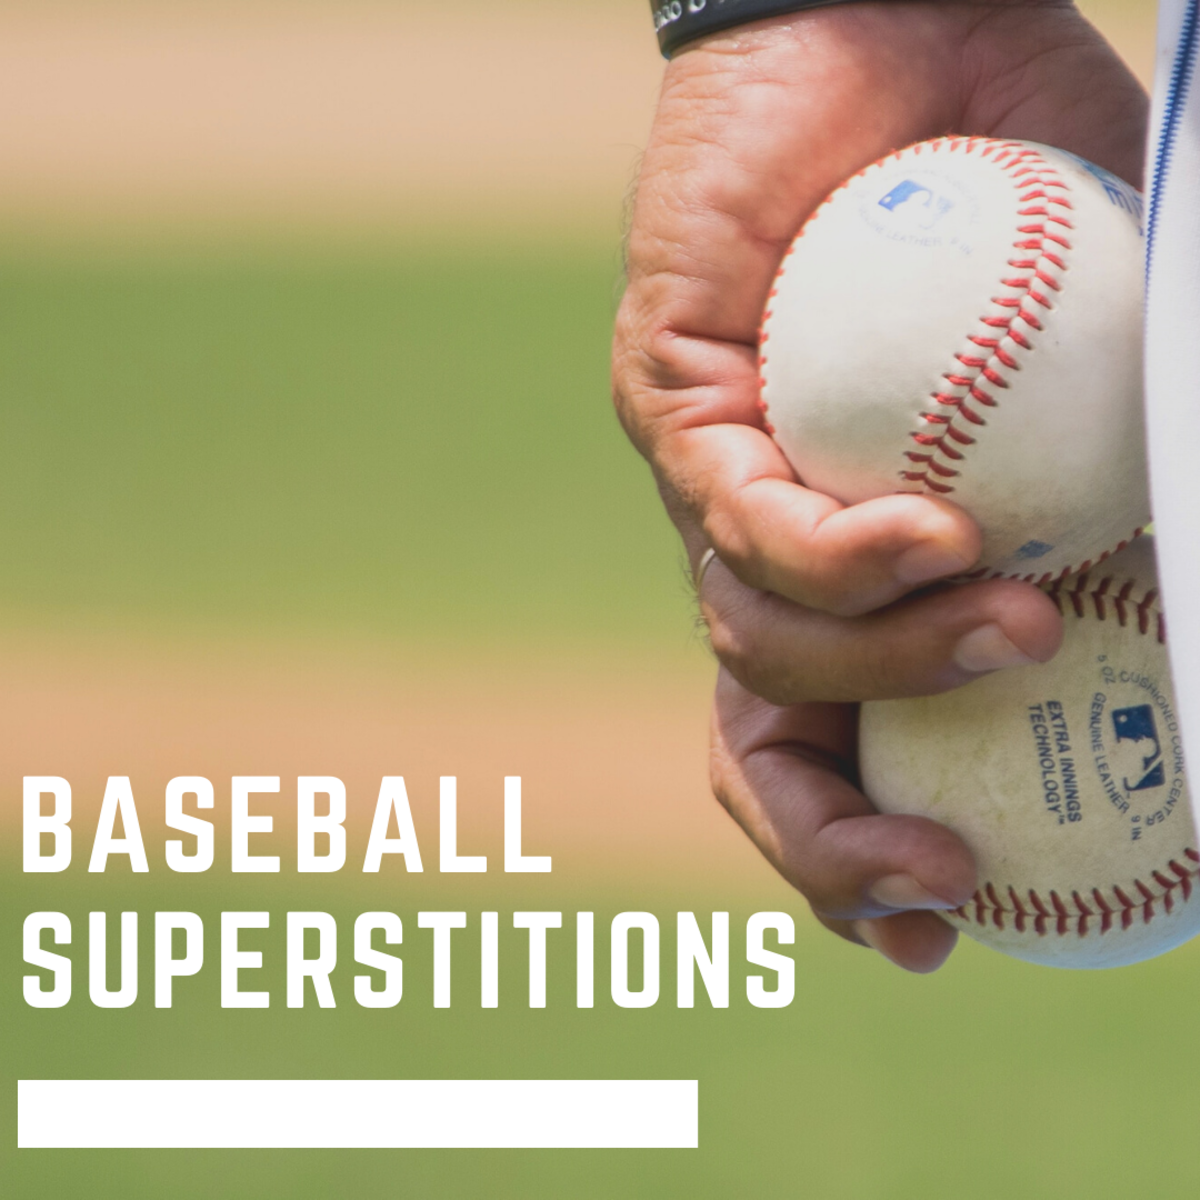 Surprisingly, many players truly believe these wild superstitions.